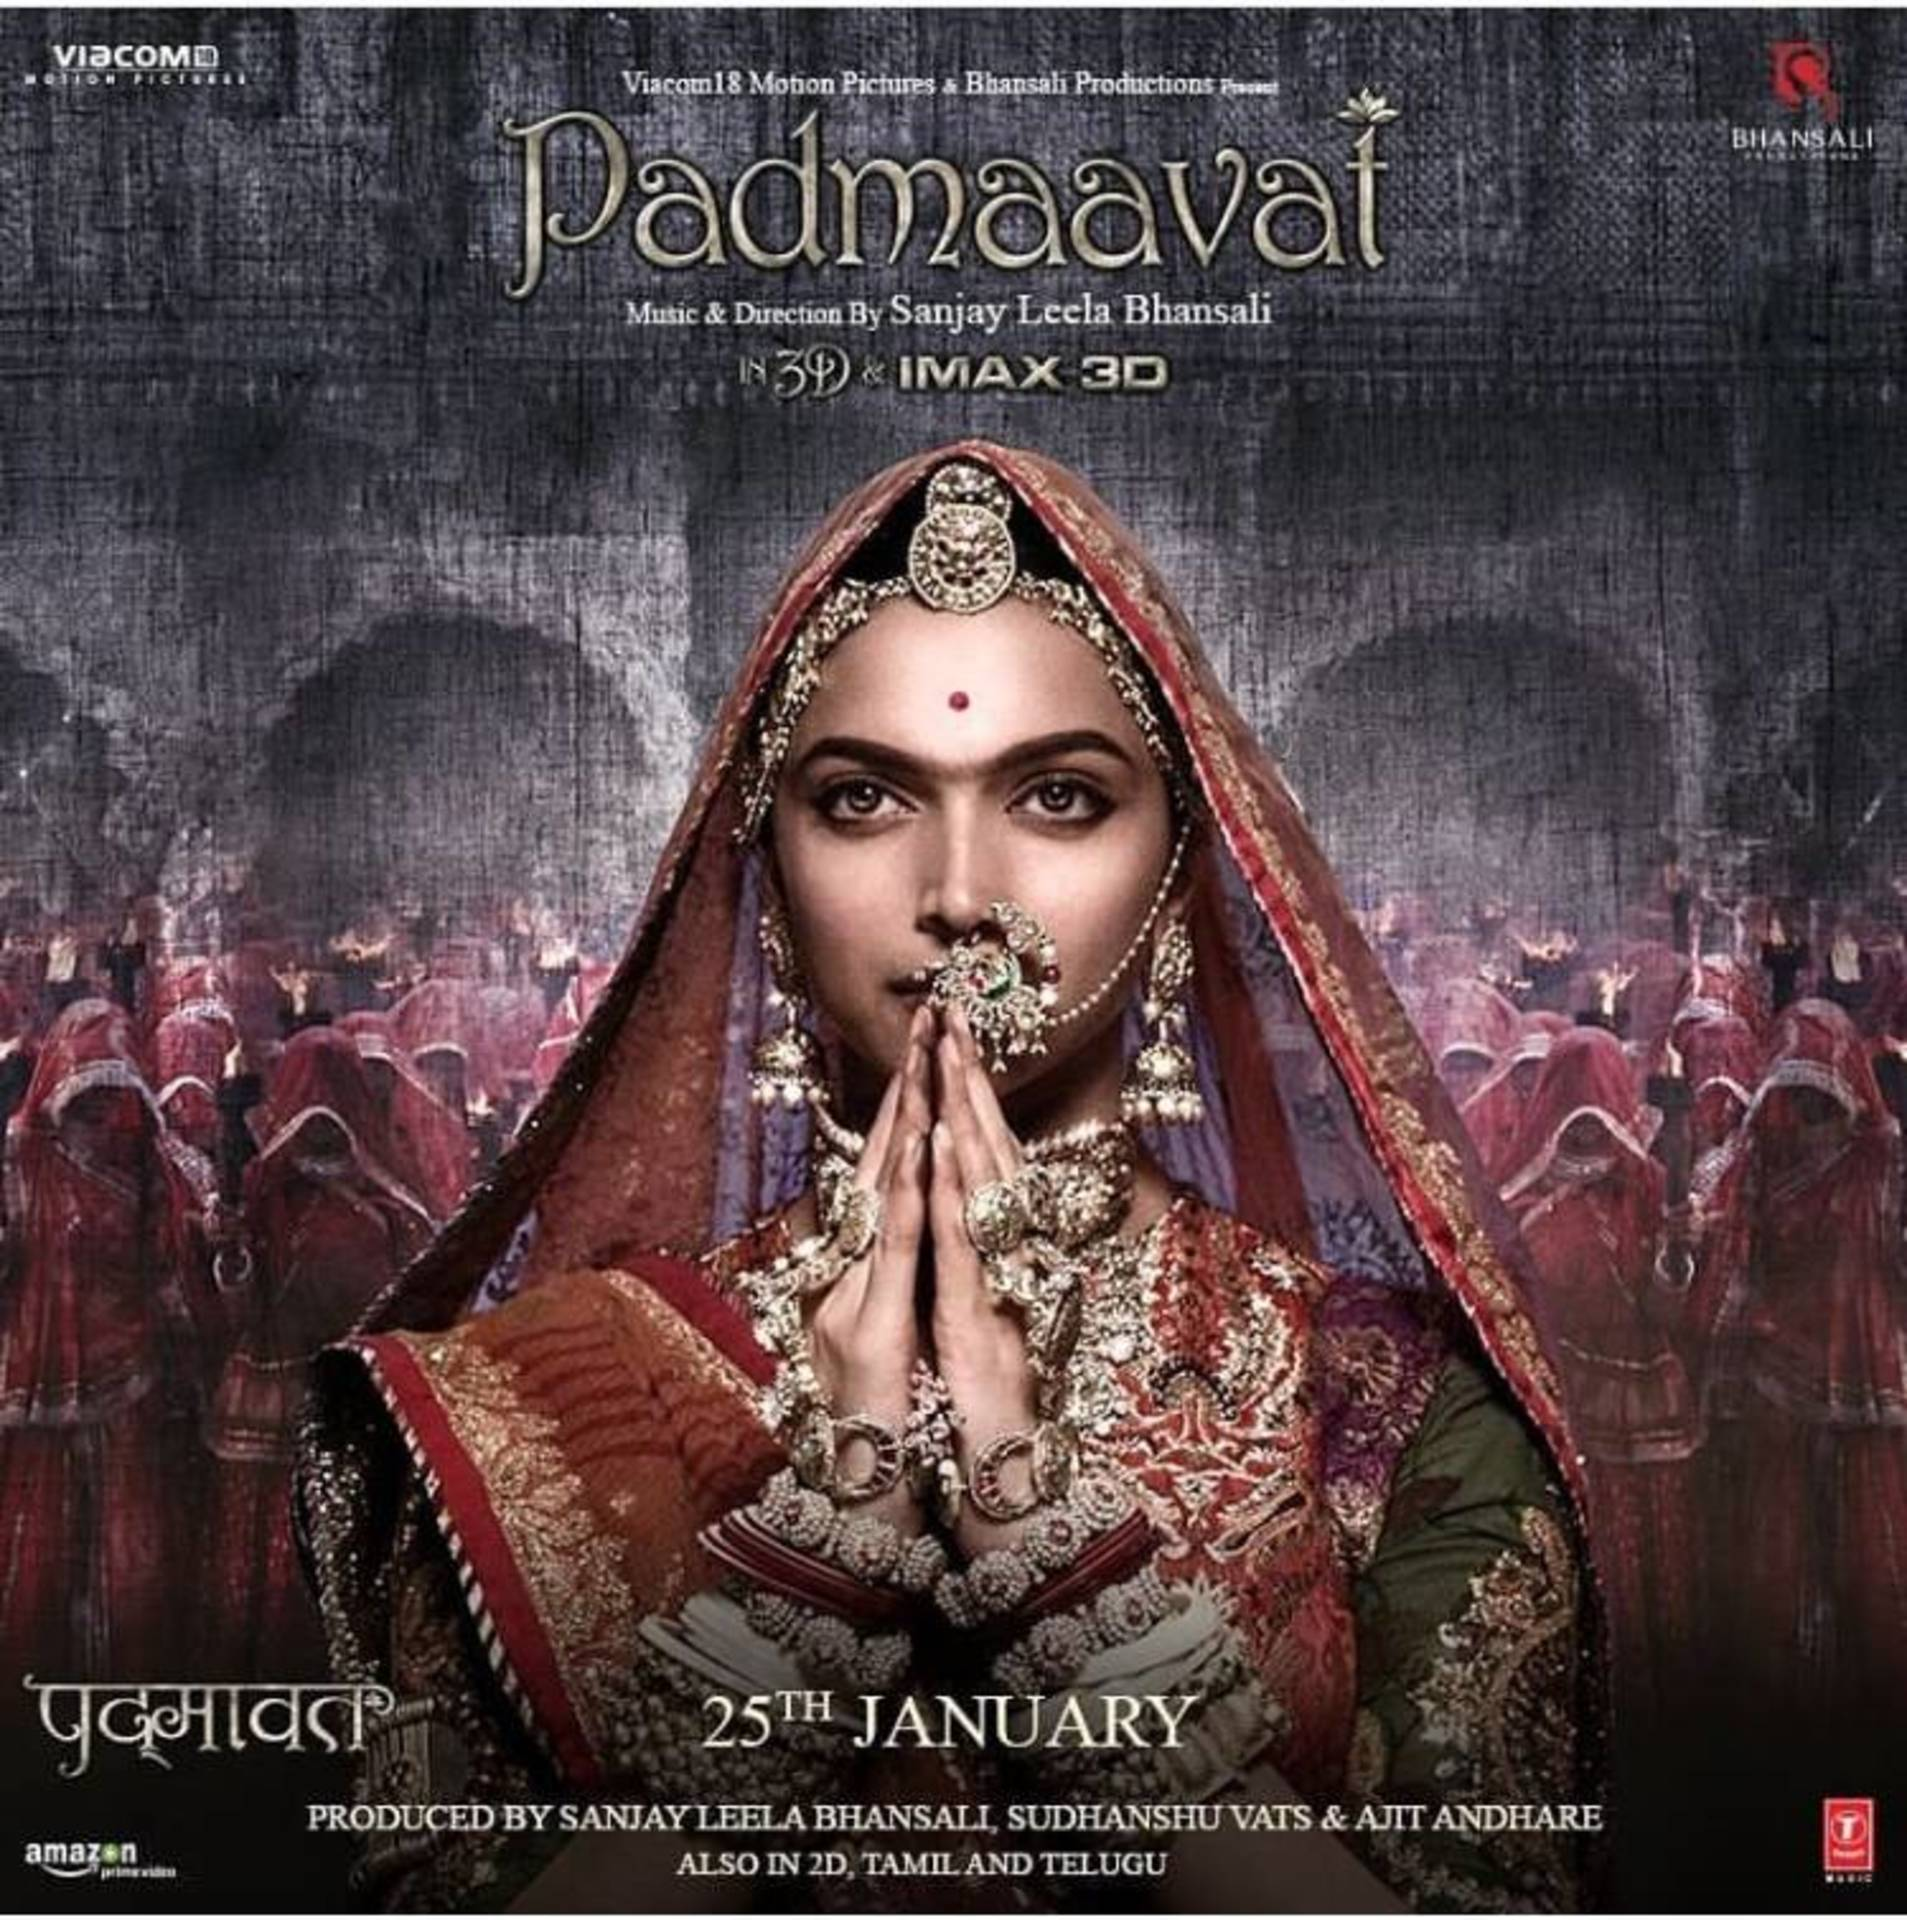 Why I want to watch 'Padmaavat' more than ever image